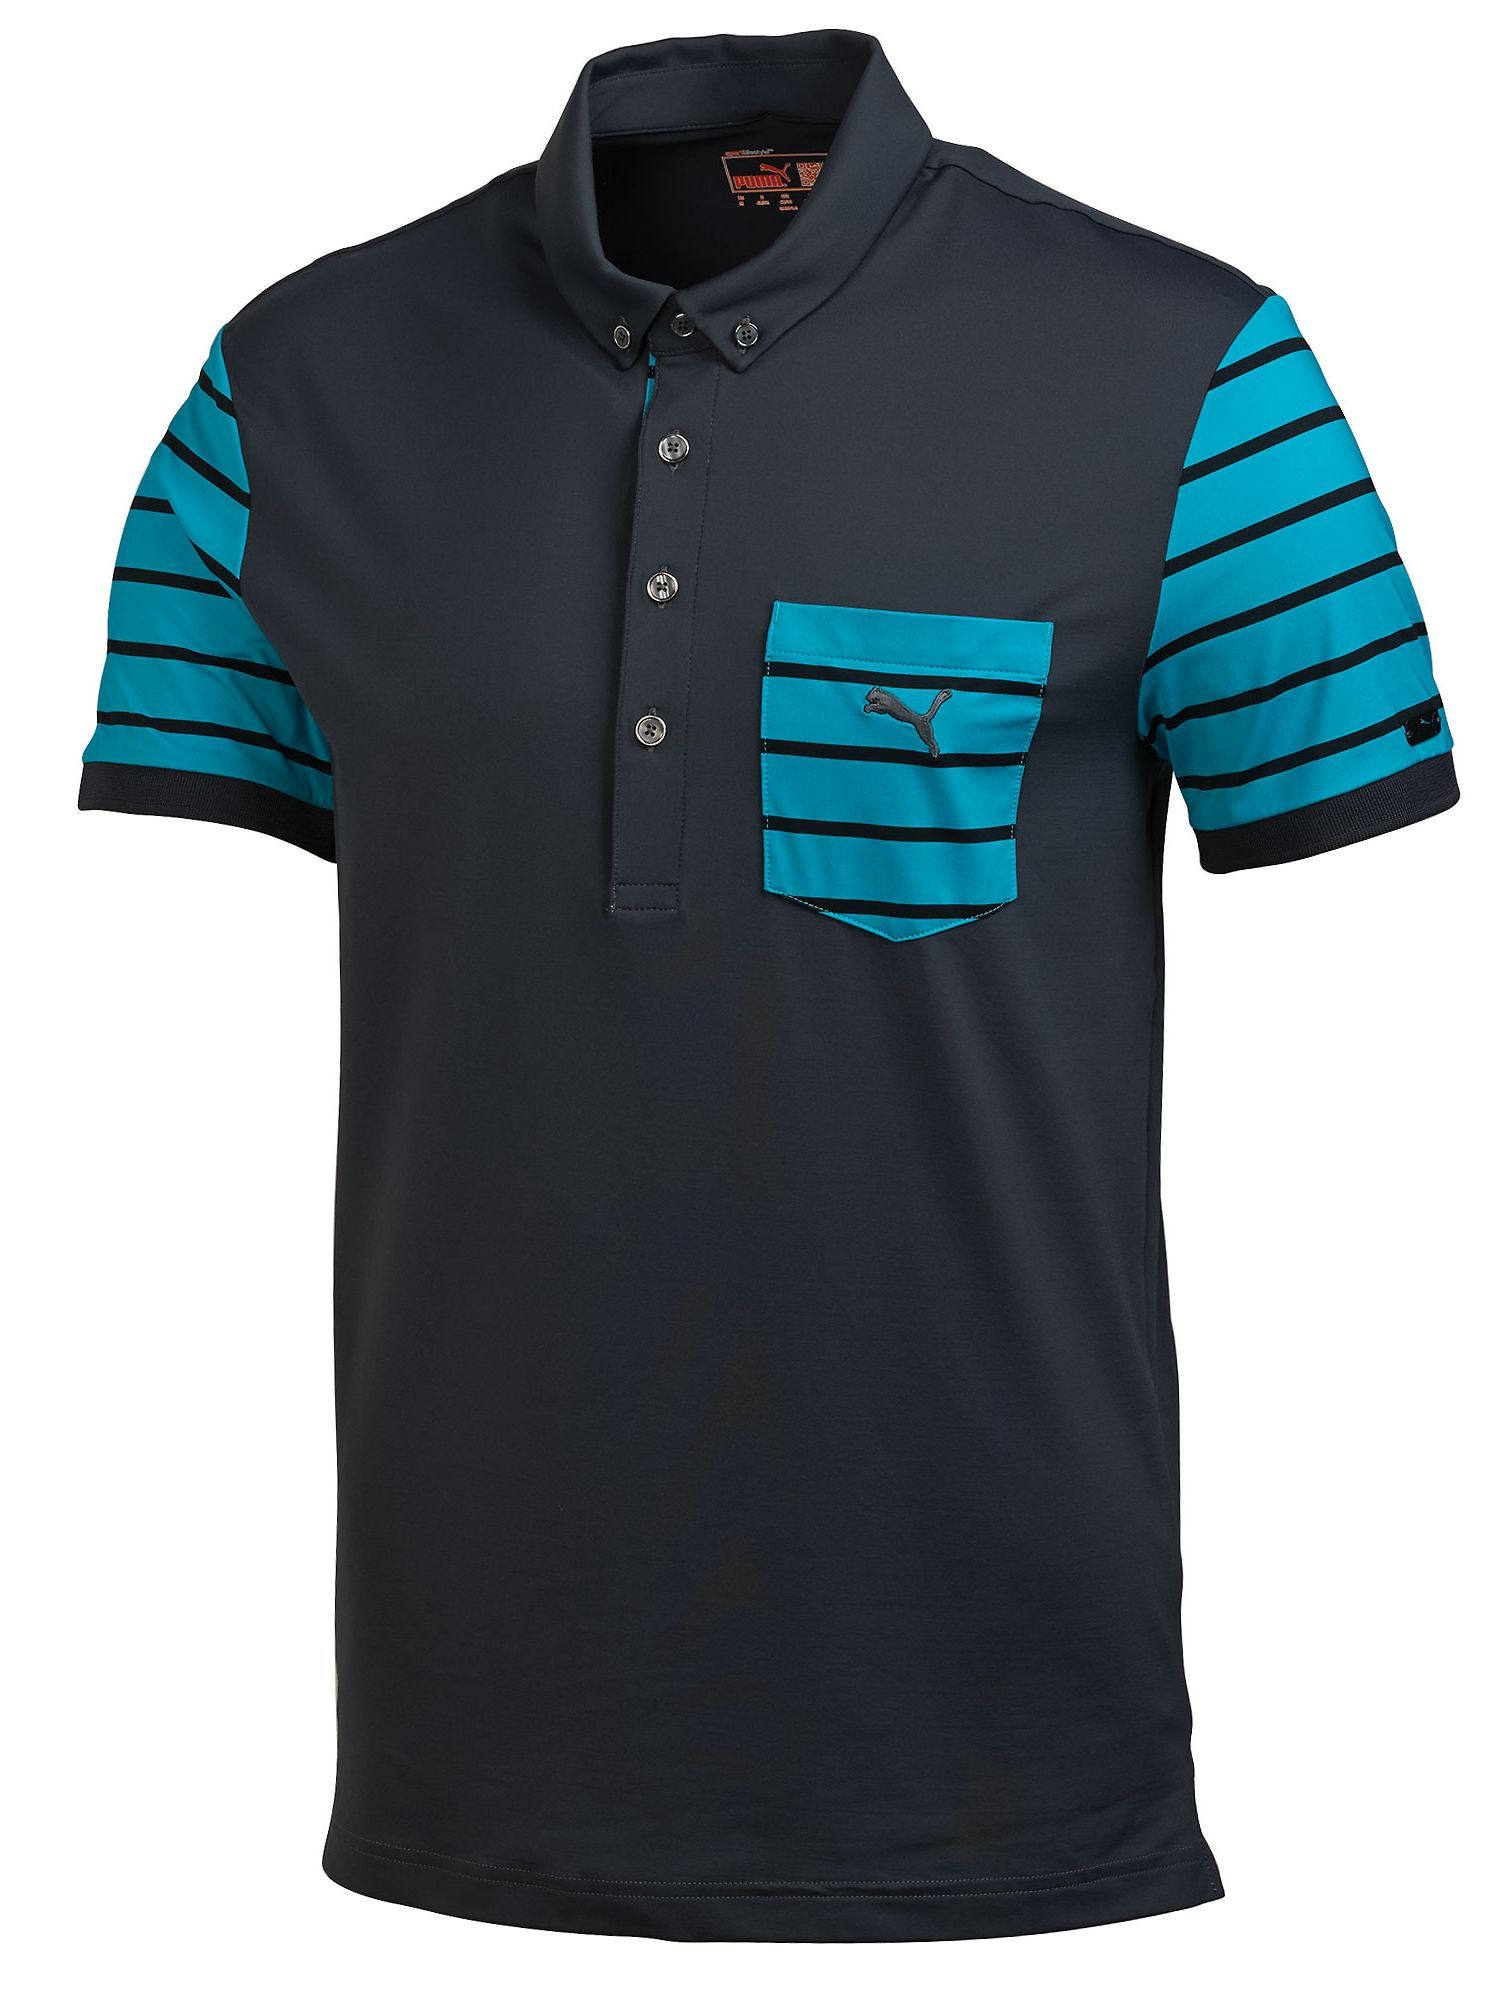 Lux pocket polo shirt